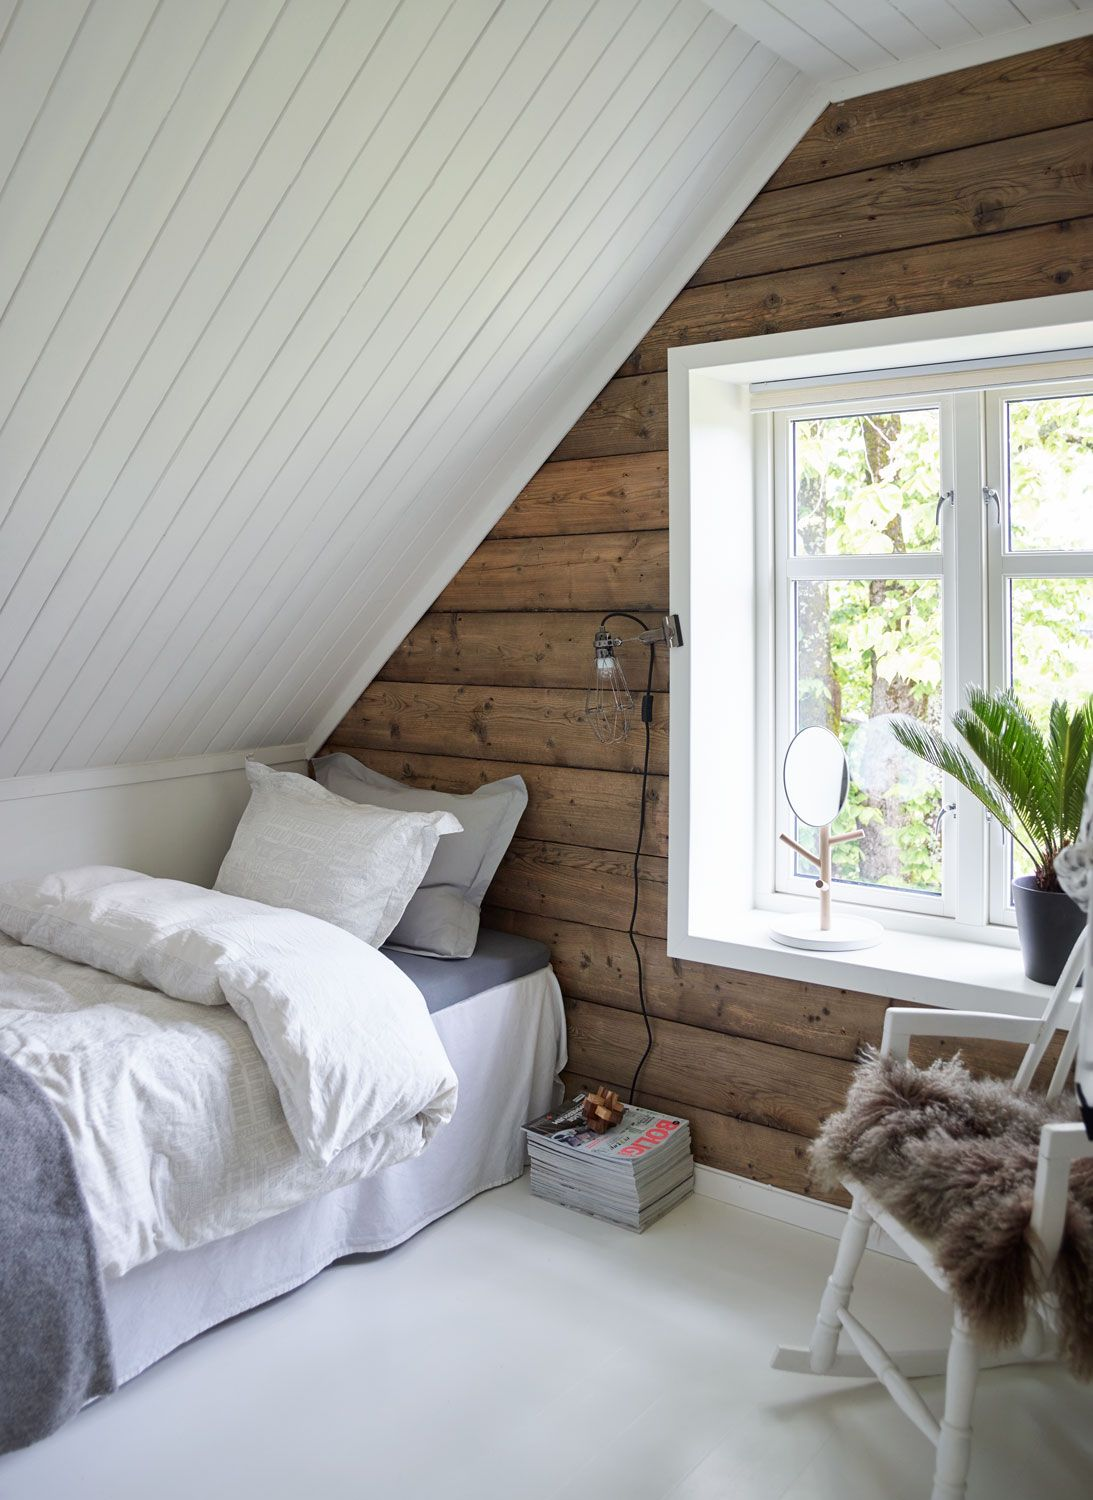 Attic bedroom design and d cor tips small attic bedrooms for Attic decoration